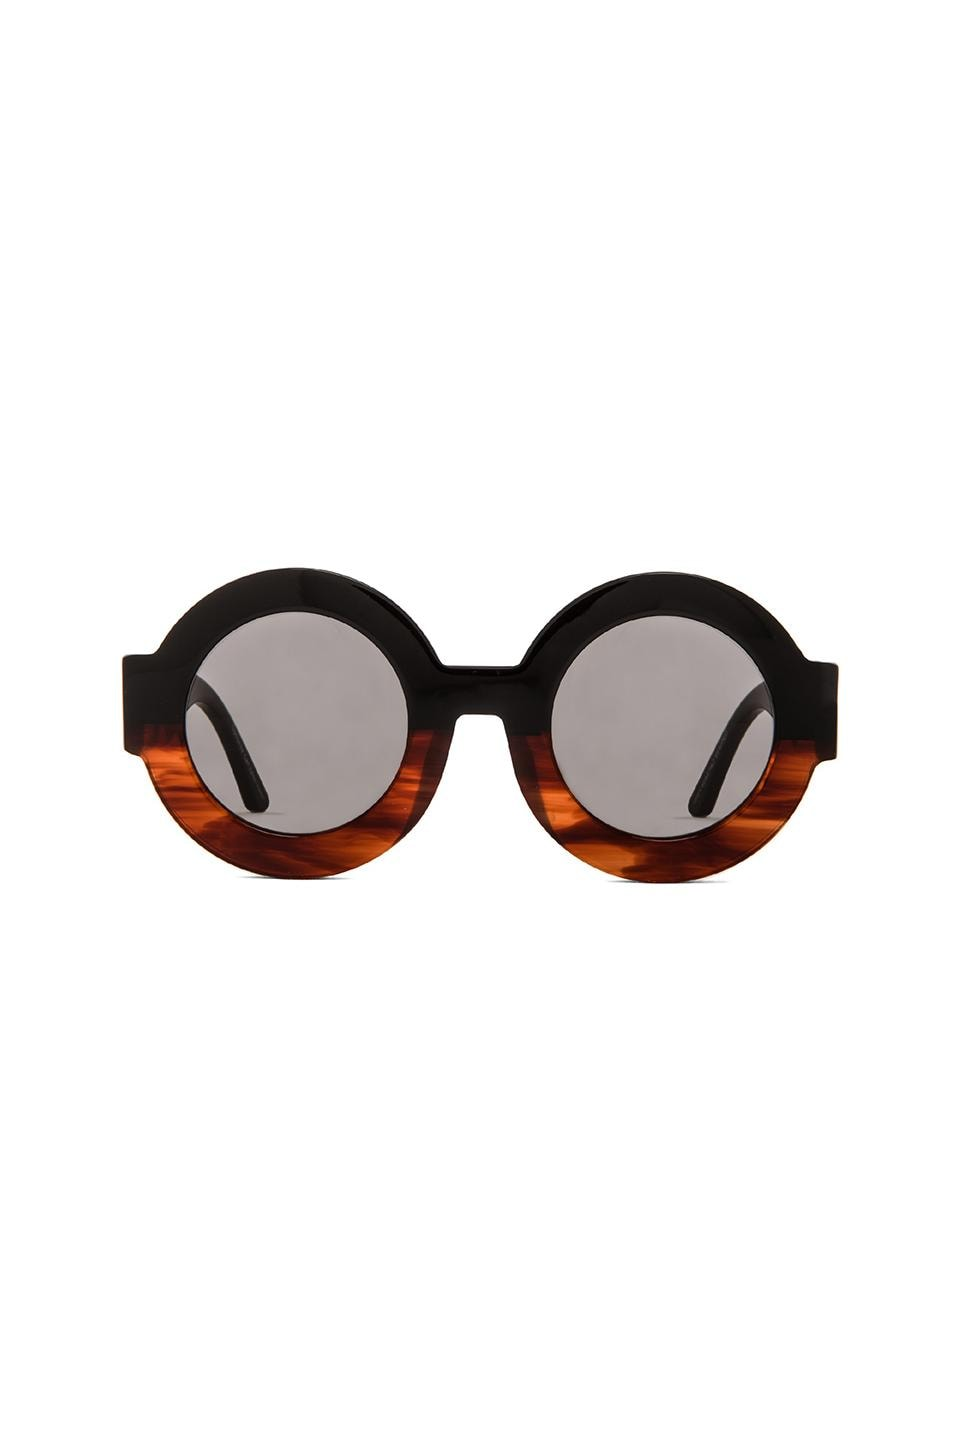 VALLEY EYEWEAR Scapula in Black Orange Fade & Grey Lens